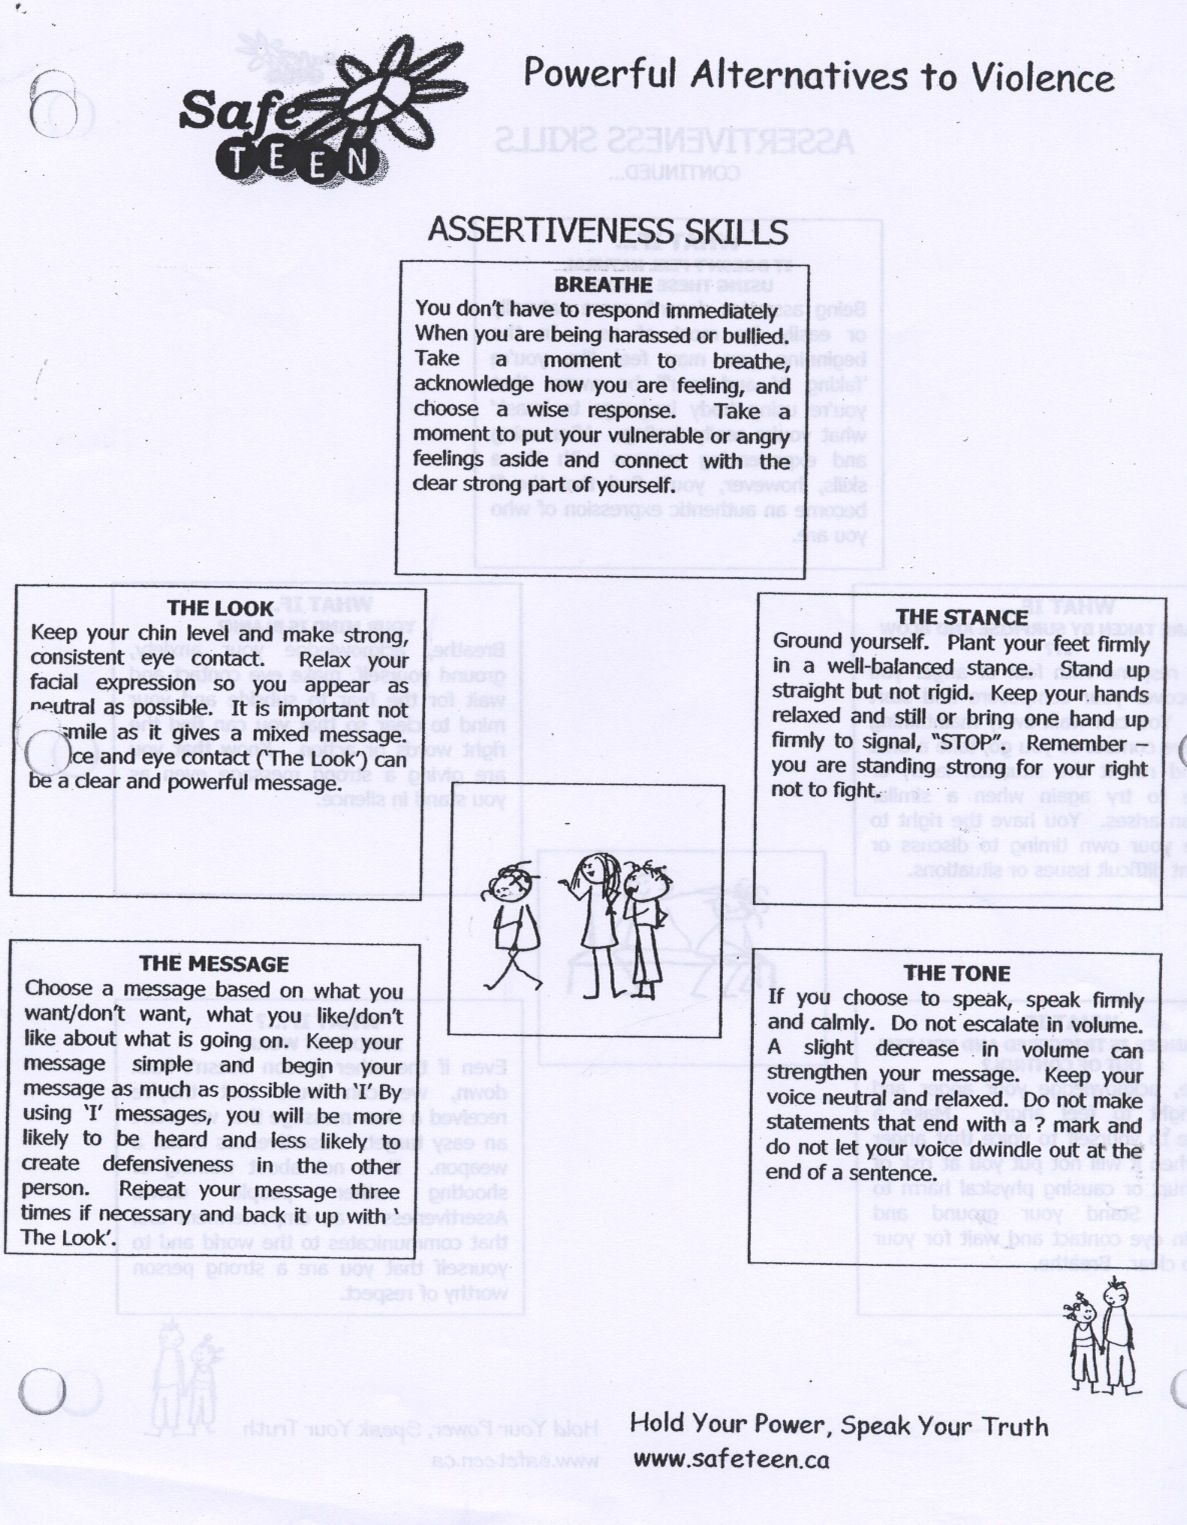 worksheet Assertiveness Training Worksheets assertiveness conflict resolution pinterest psychology skills whatever the situation builds confidence self este